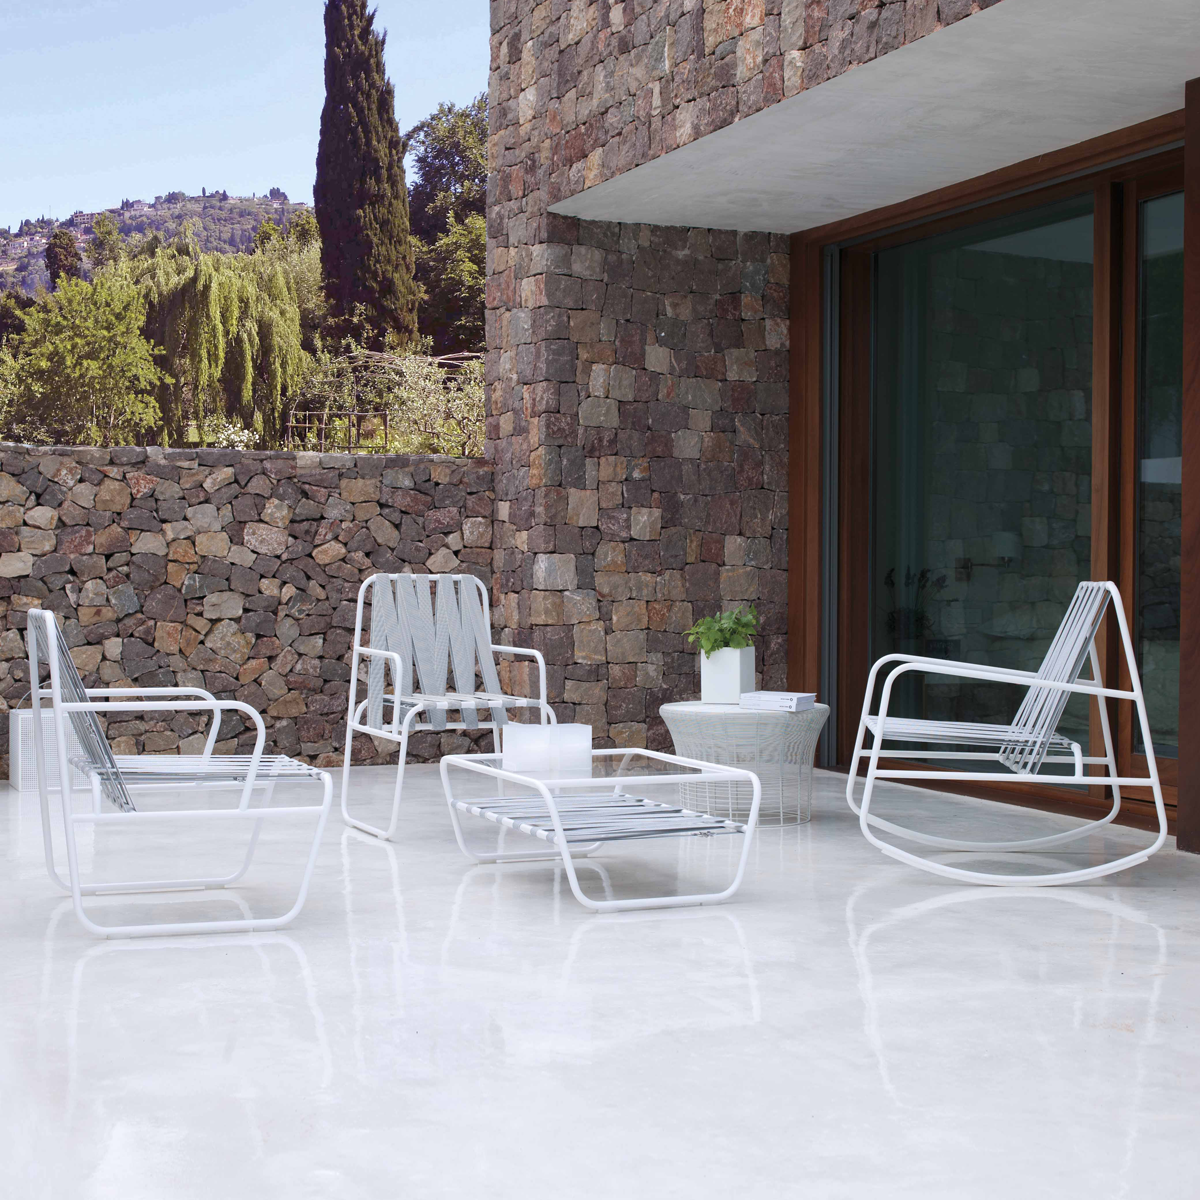 Modern Spanish furniture for the outdoors